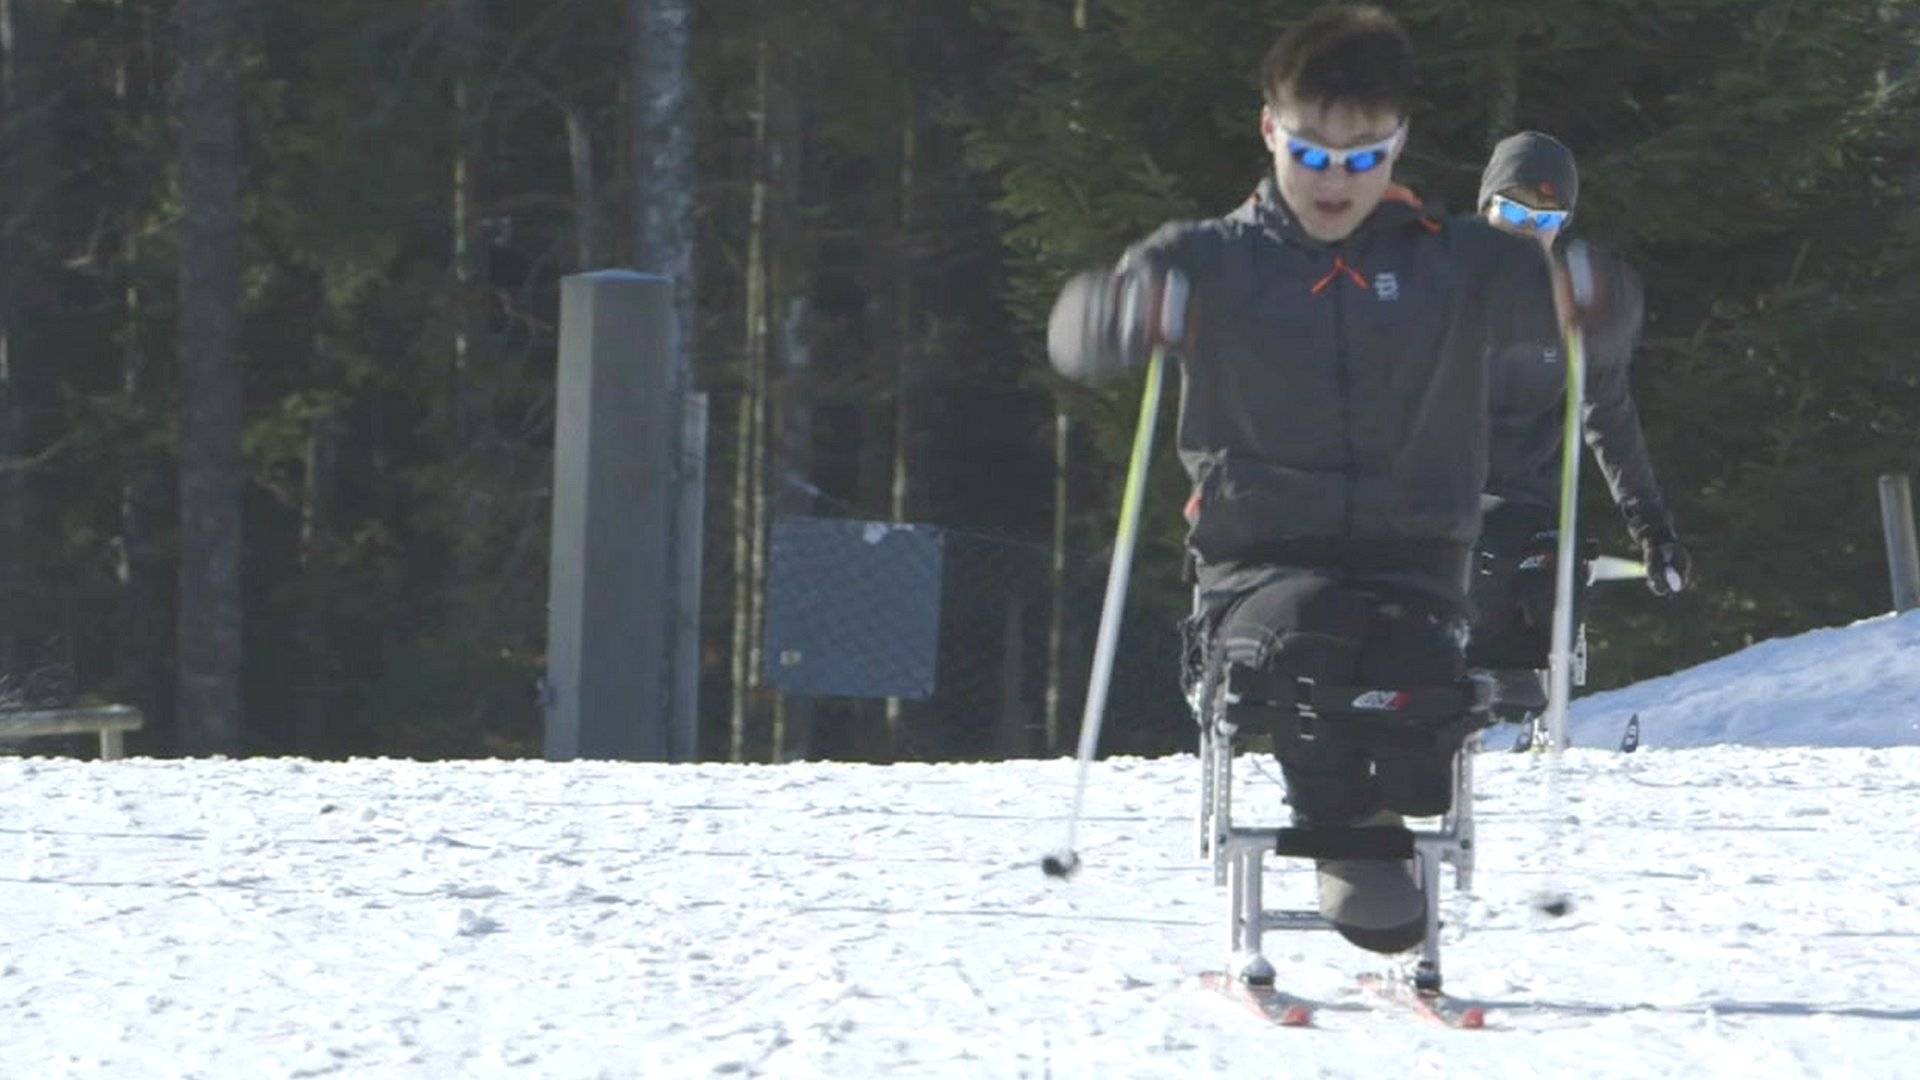 North Koreans aiming for para-sport glory